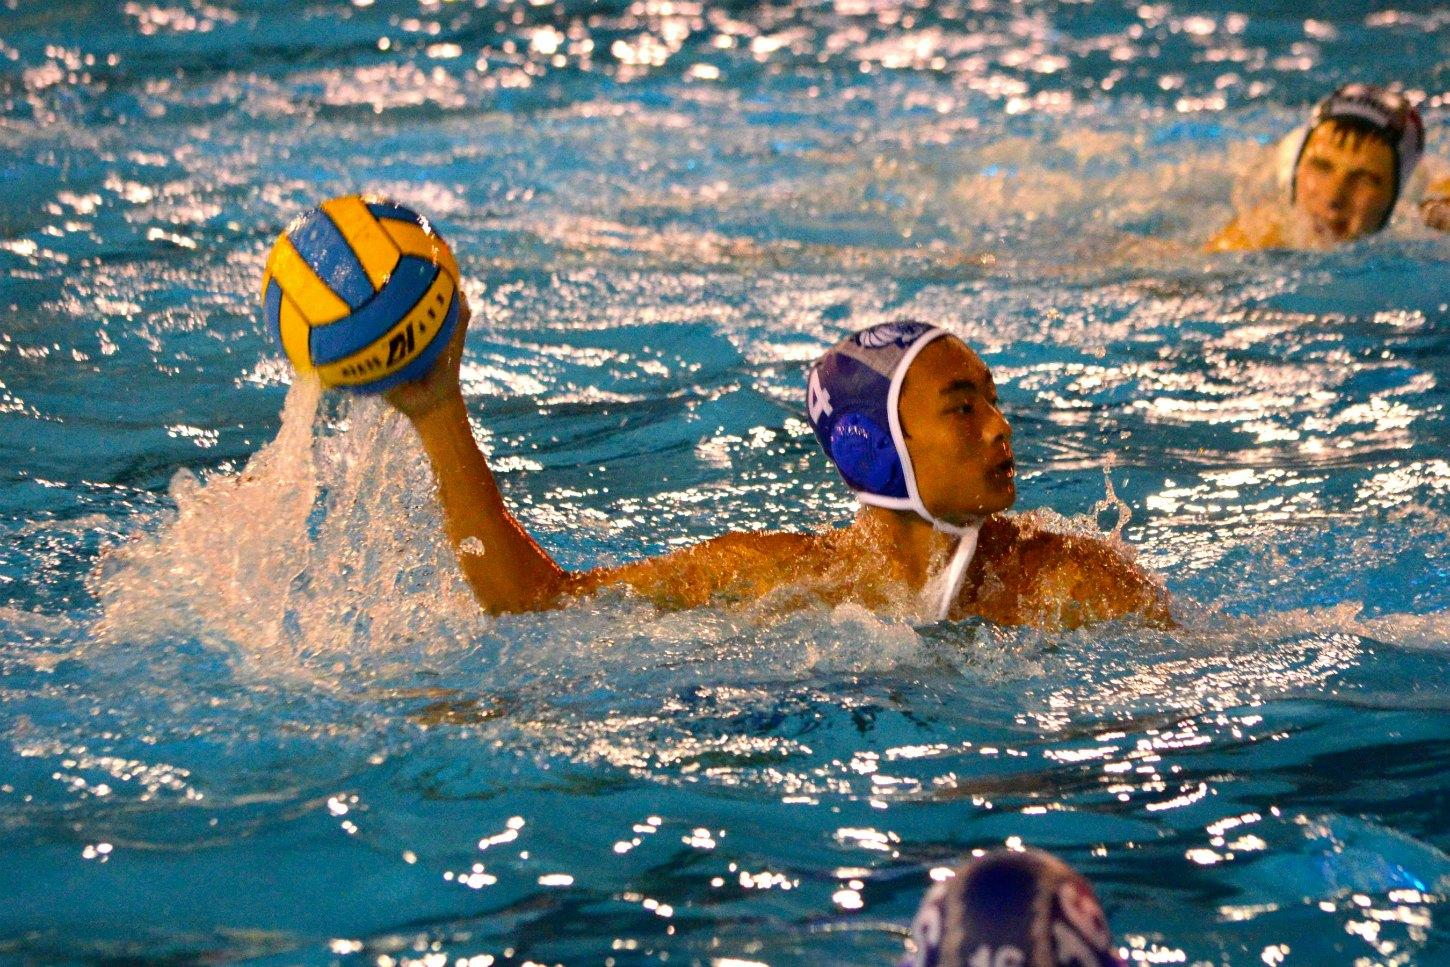 One of the members of the team honored at Senior Night, senior Patrick Fong prepares to make a pass. Photo by Kunal Pandit.